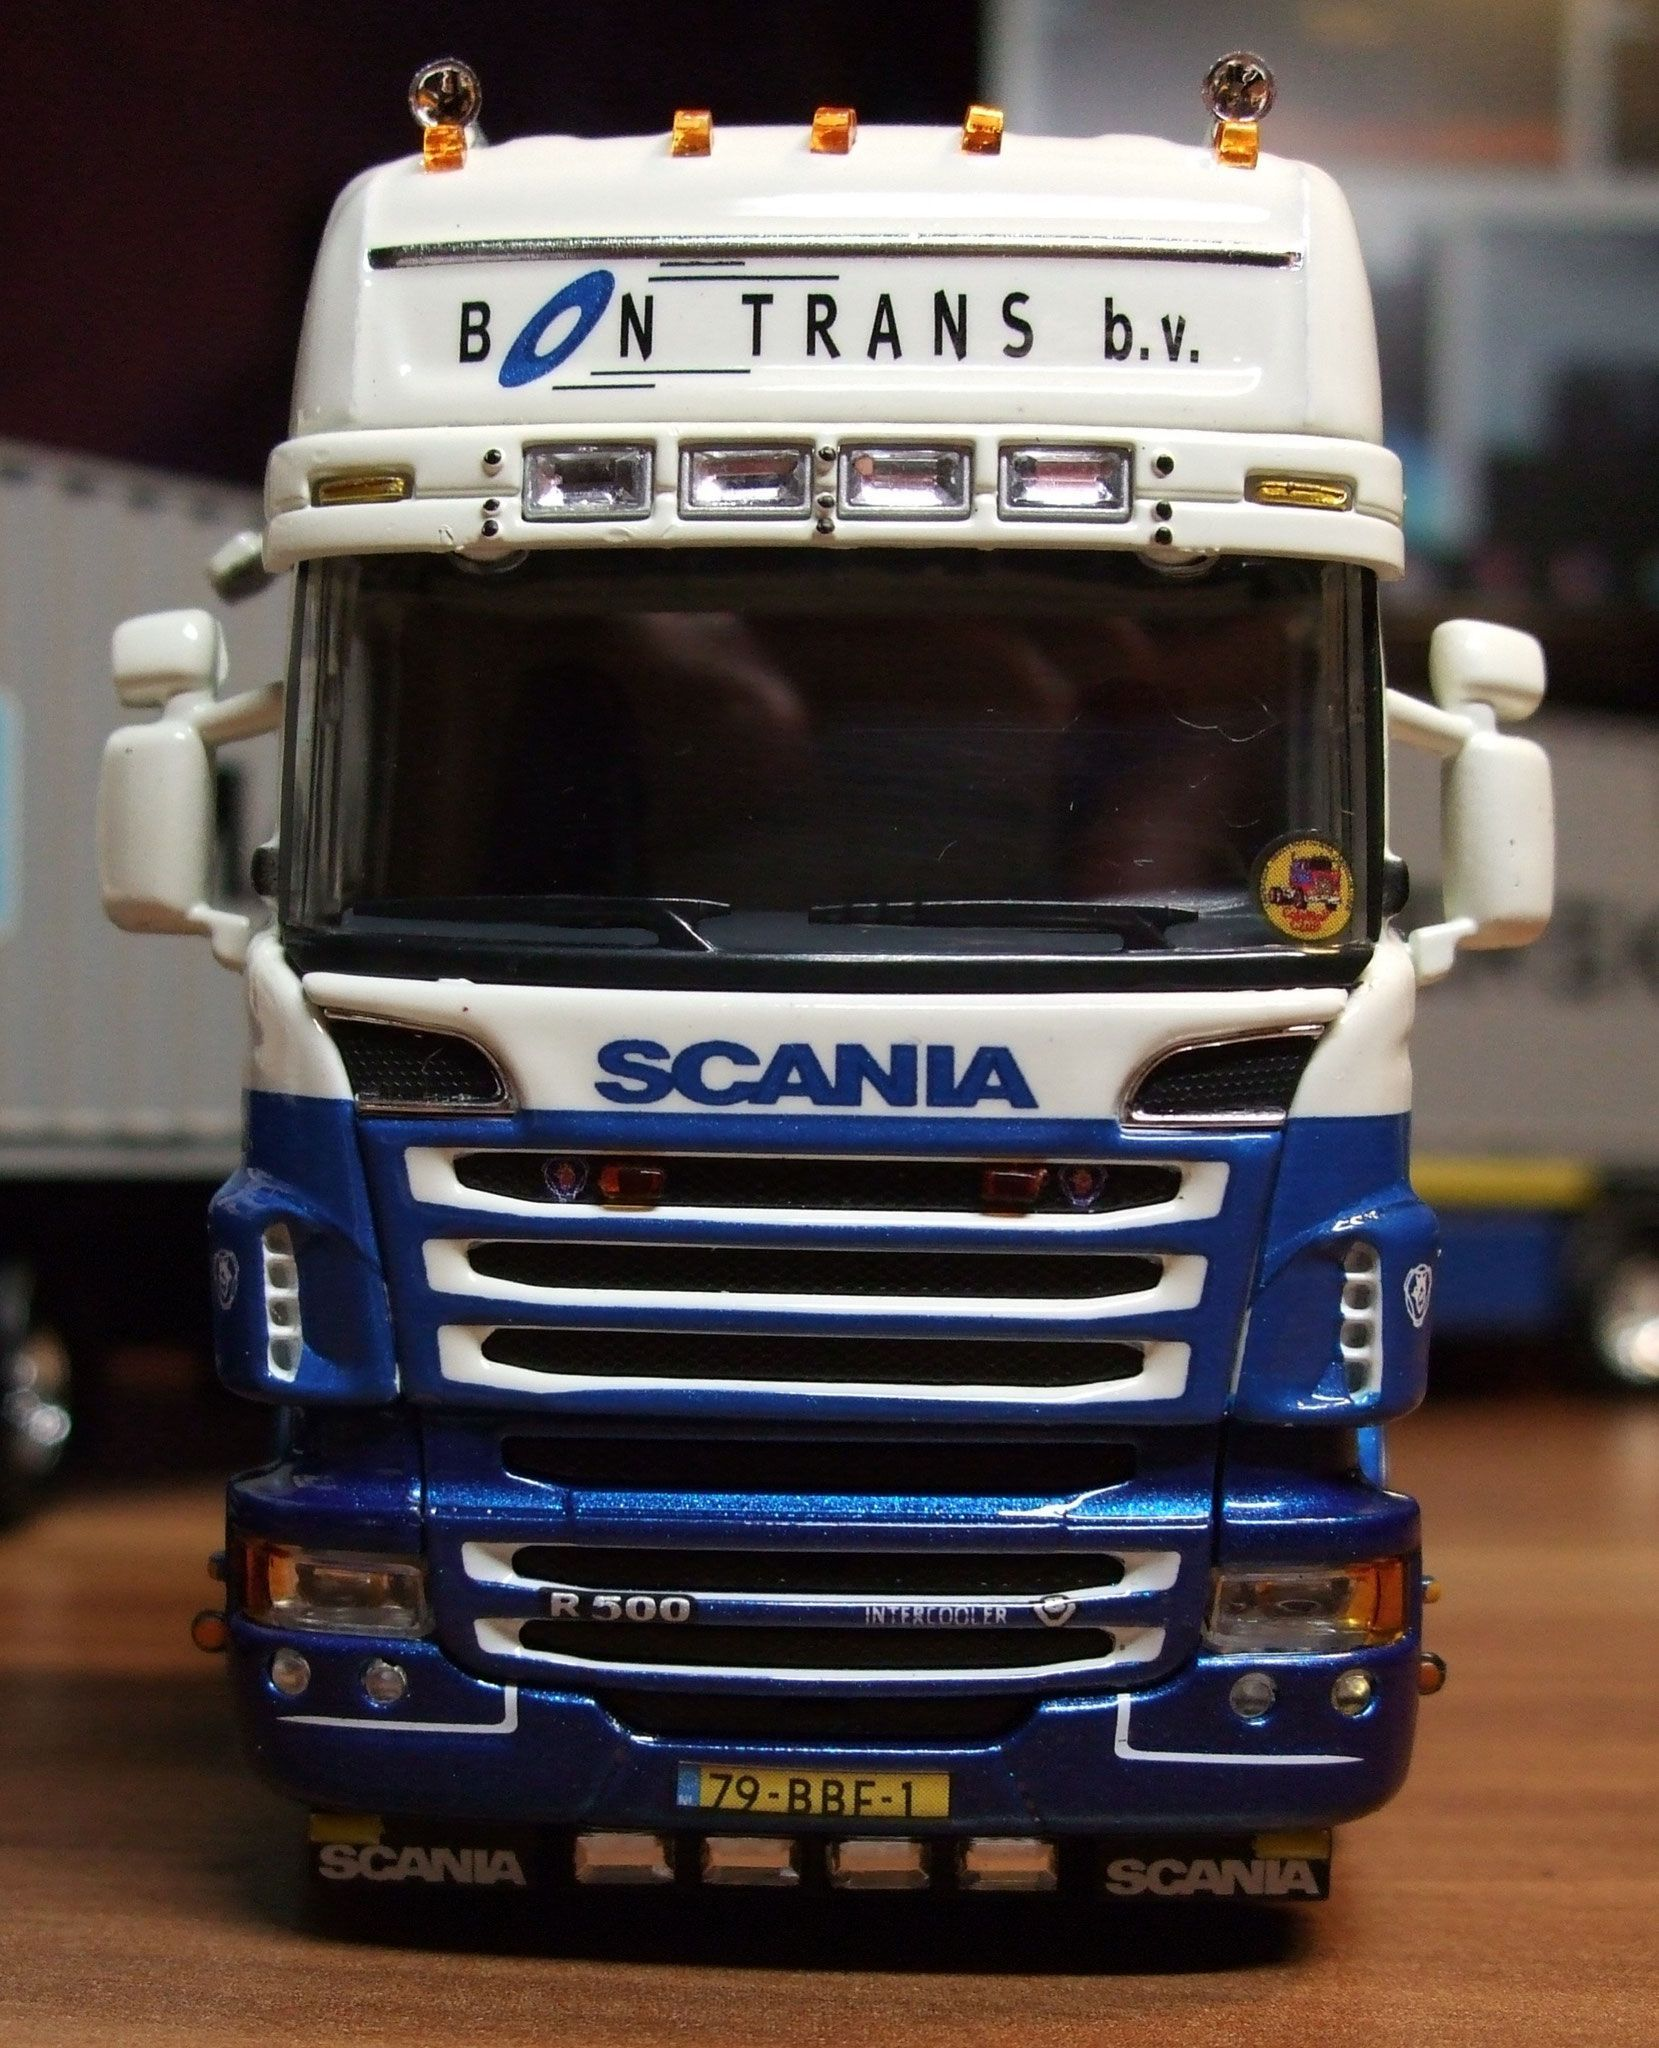 Monster Truck In The World Truck Is One Type Of Lorry That Has A Huge Body And Also Design There Are Several Trucking Com Mercedes Actros Lkw Monster Trucks